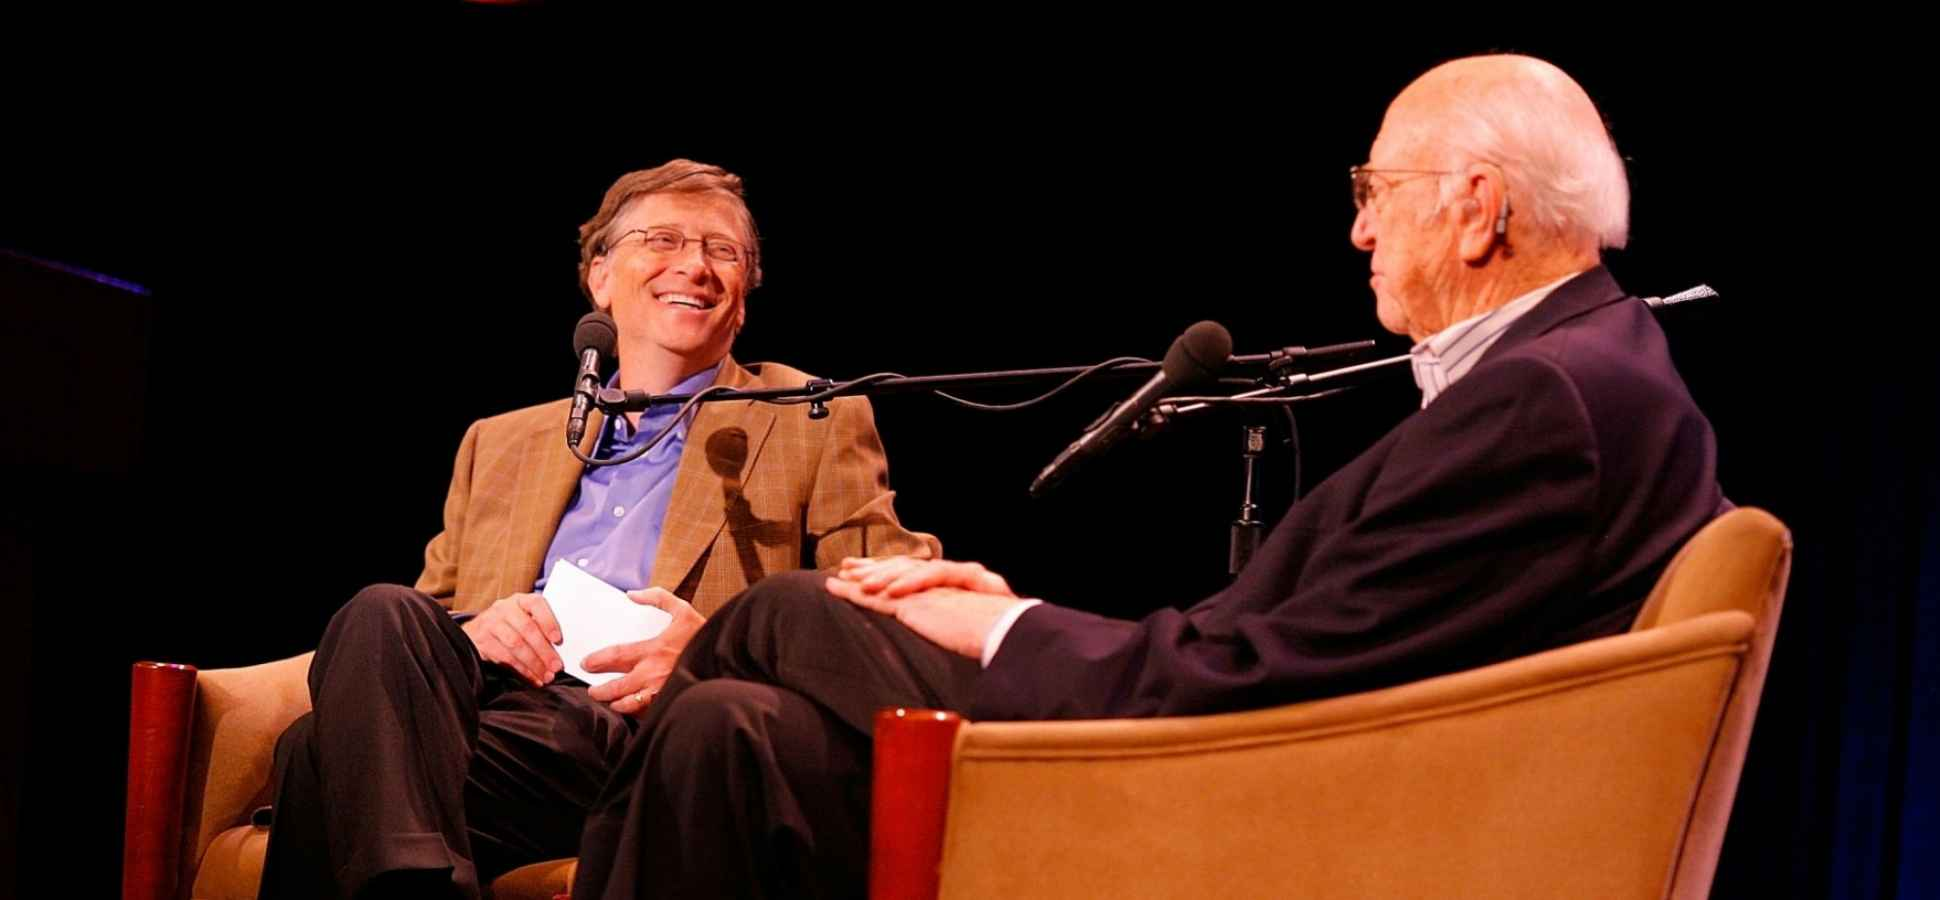 6 Parental Lessons That Helped Bill Gates Become a Billionaire